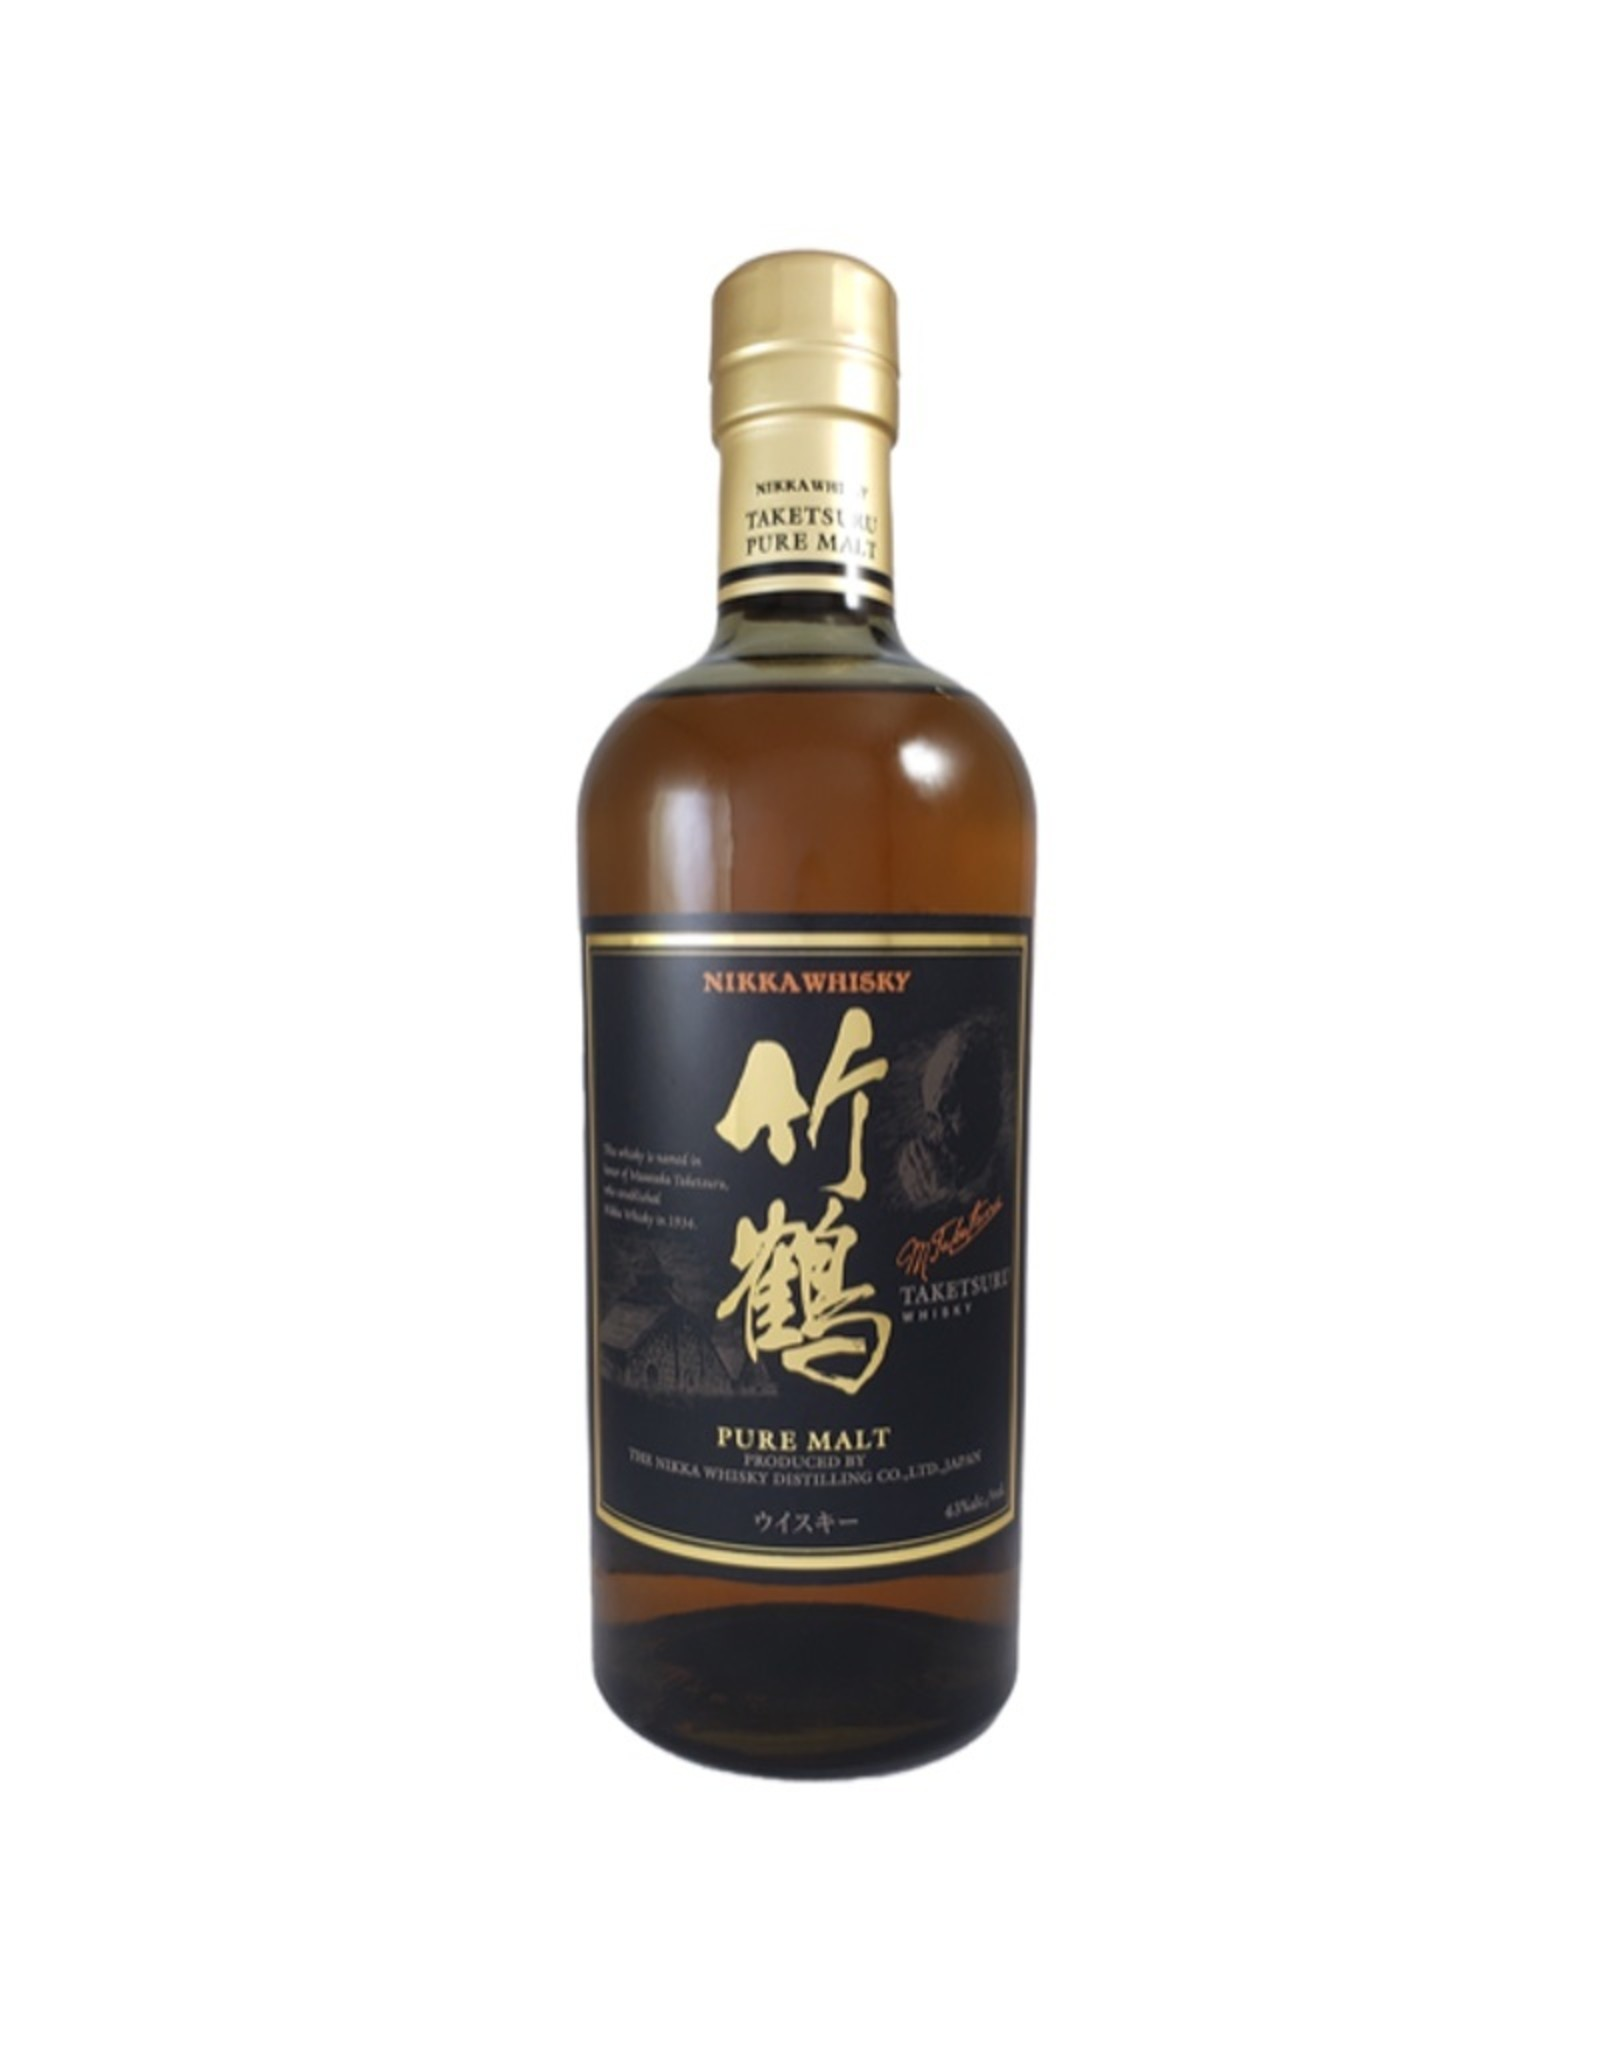 Nikka Nikka Whiskey Pure Malt Taketsuru 86